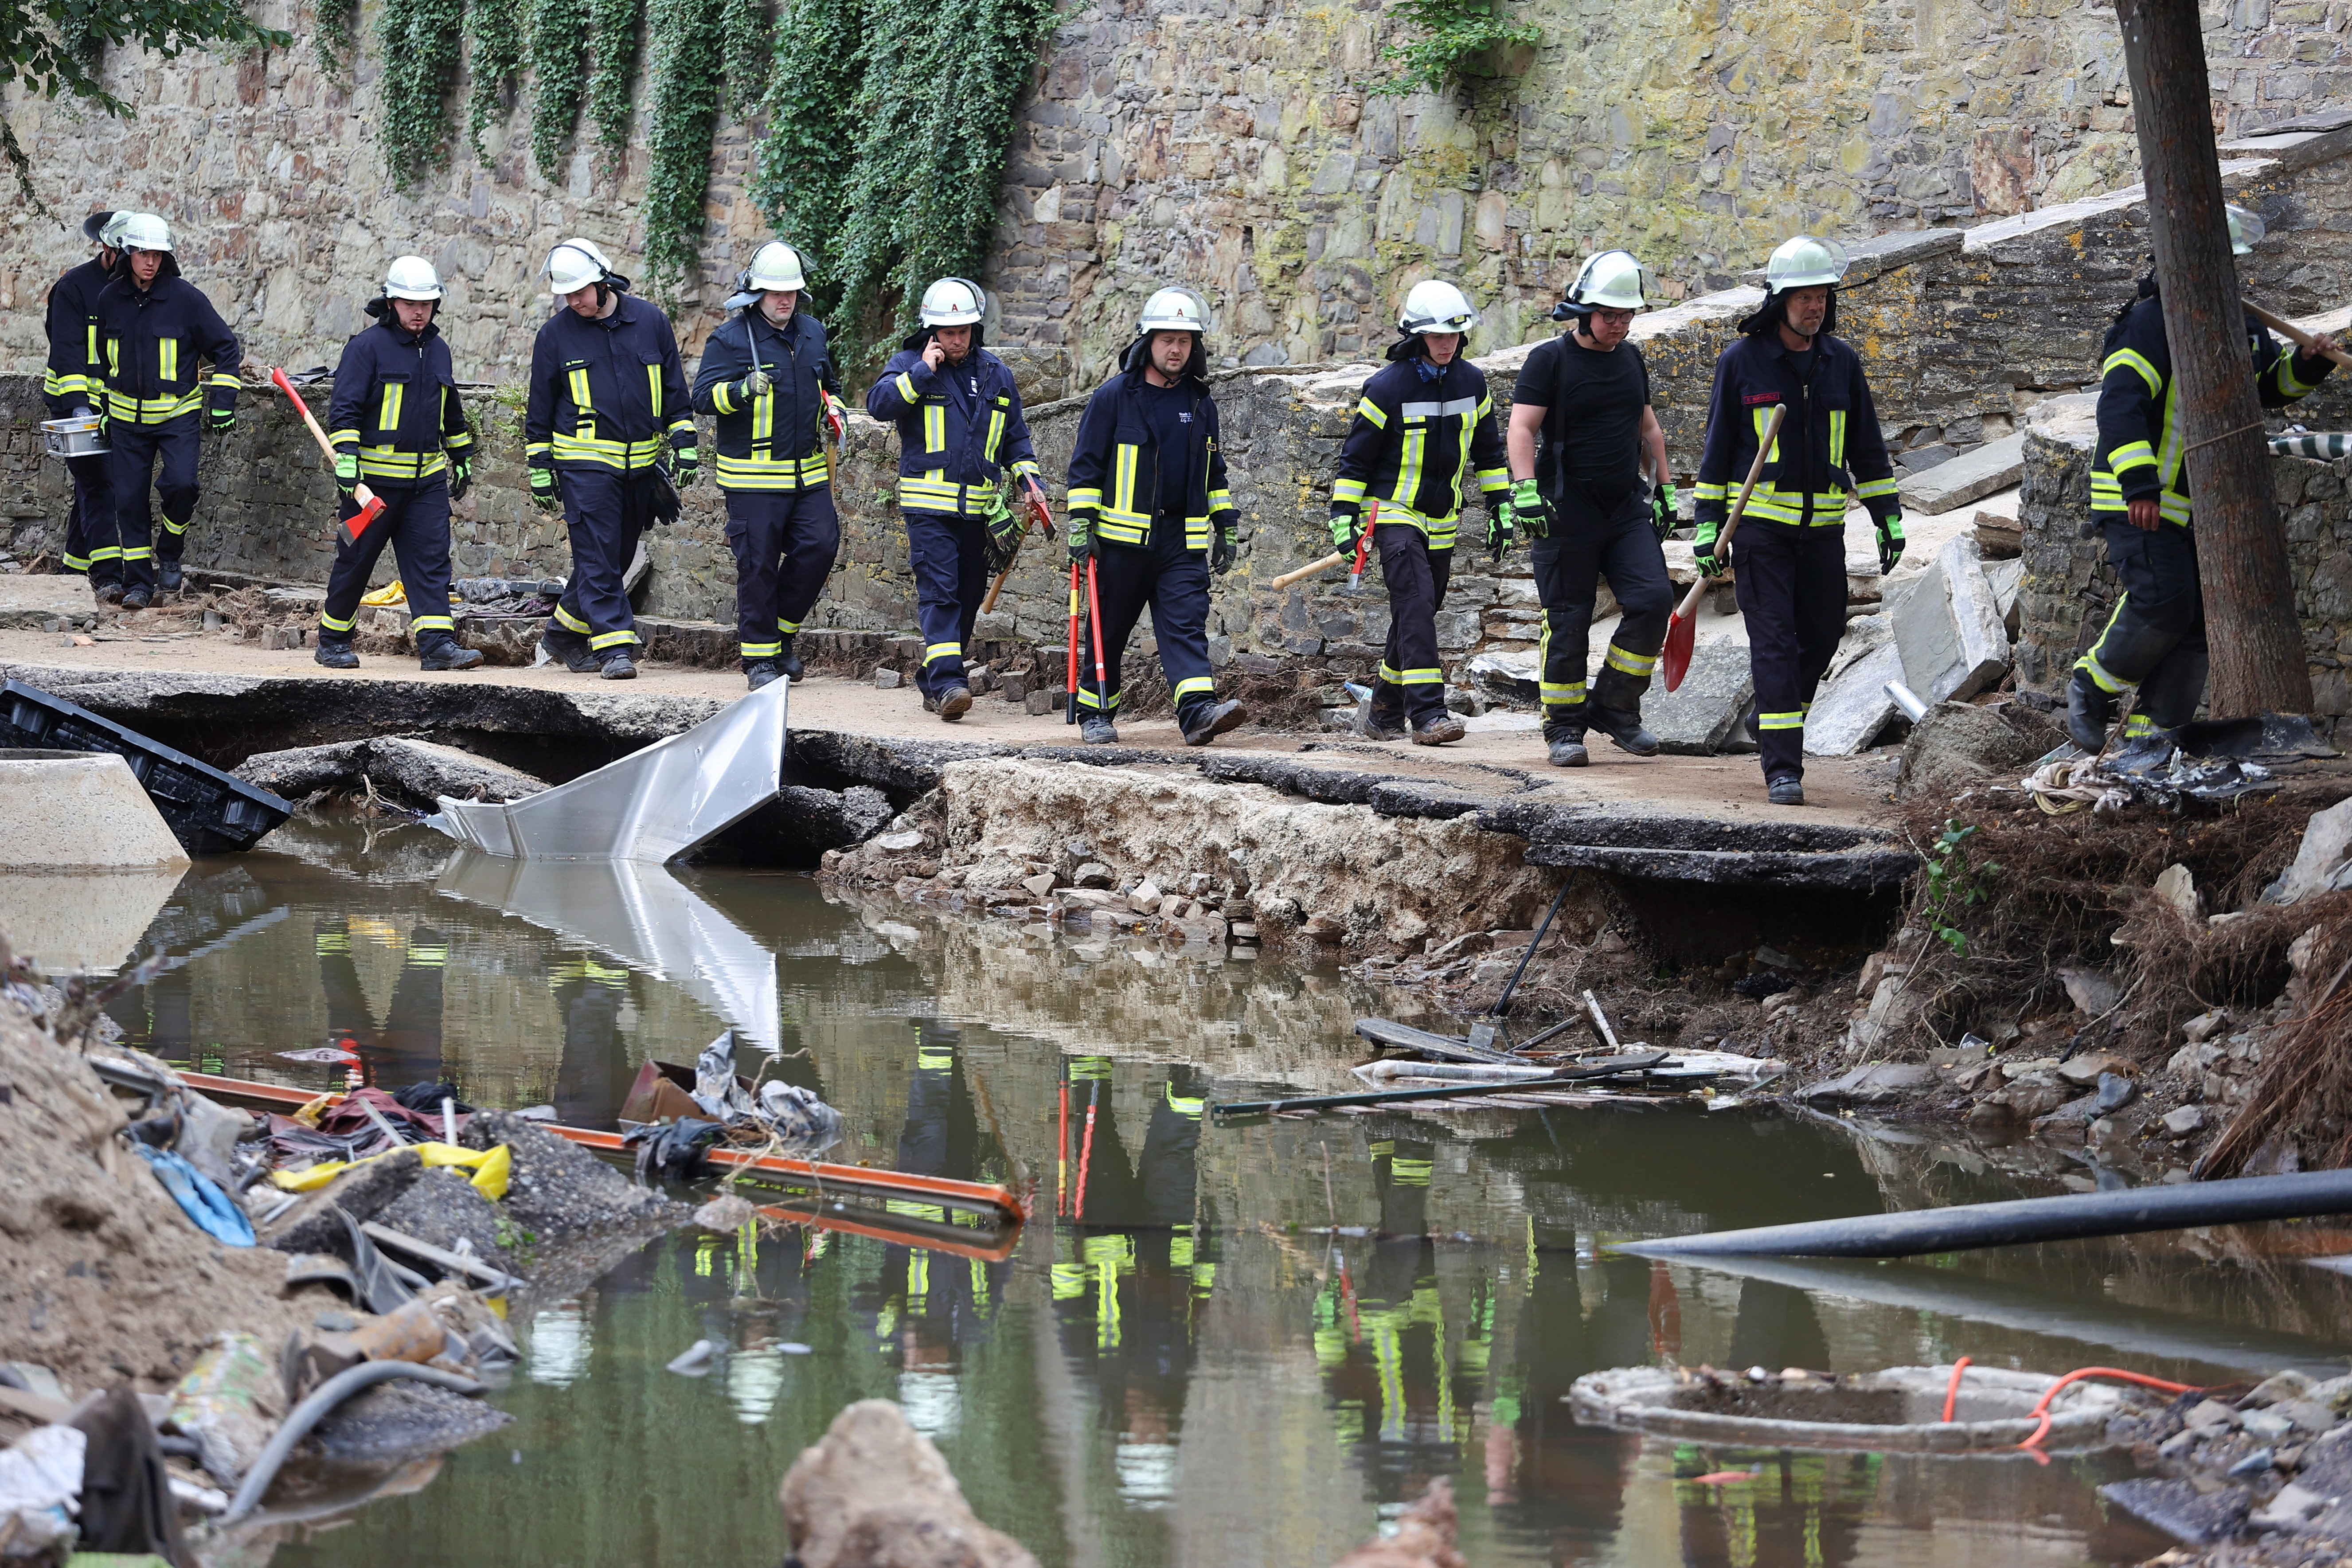 firefighters walk in an area affected by floods caused by heavy rainfalls in Bad Muenstereifel, Germany.